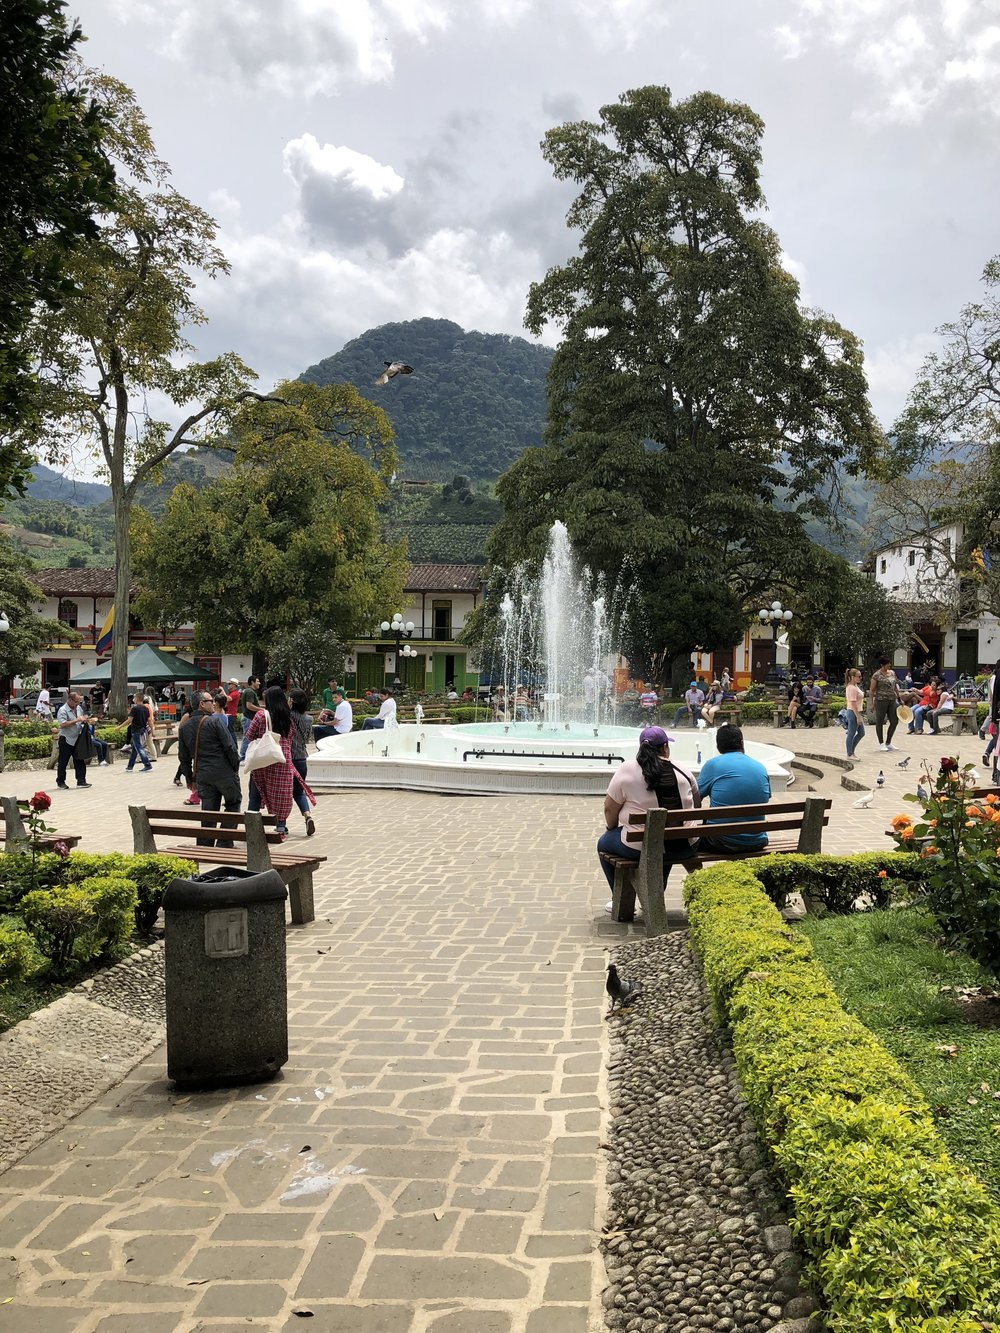 The town square in Jardin, Colombia. We spent most of our time here, watching and taking it all in.